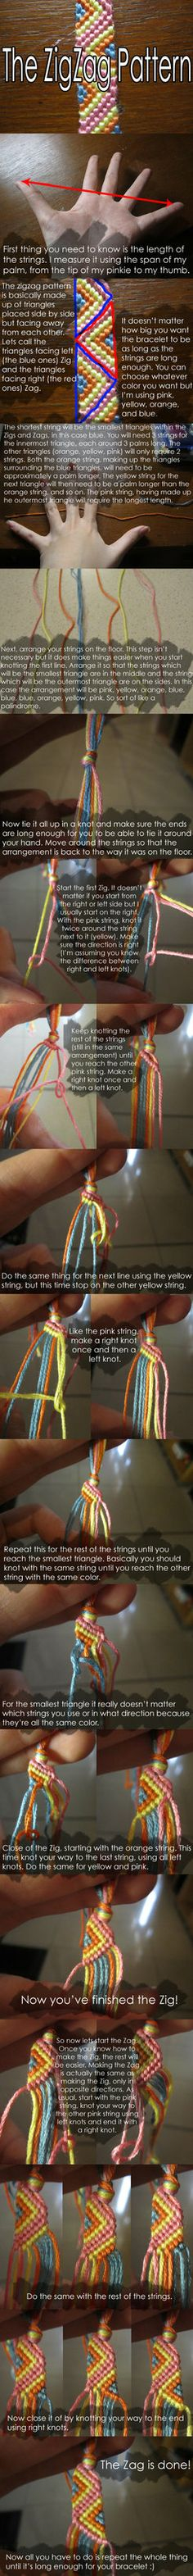 Zigzag Bracelet Tutorial by on deviantART by mvaleriaTutorial: Pop Can Tab BraceletZigzag Bracelet Tutorial always wanted to learn how to do this! by rosellaZigzag Bracelet Tutorial by - most detailed tutorial I've ever seen.Zigzag Bracelet - Made so many Diy Friendship Bracelets Tutorial, Diy Friendship Bracelets Patterns, Diy Bracelets Easy, Summer Bracelets, Bracelet Crafts, Cute Bracelets, Can Tab Bracelet, Kumihimo Bracelet, Macrame Bracelets